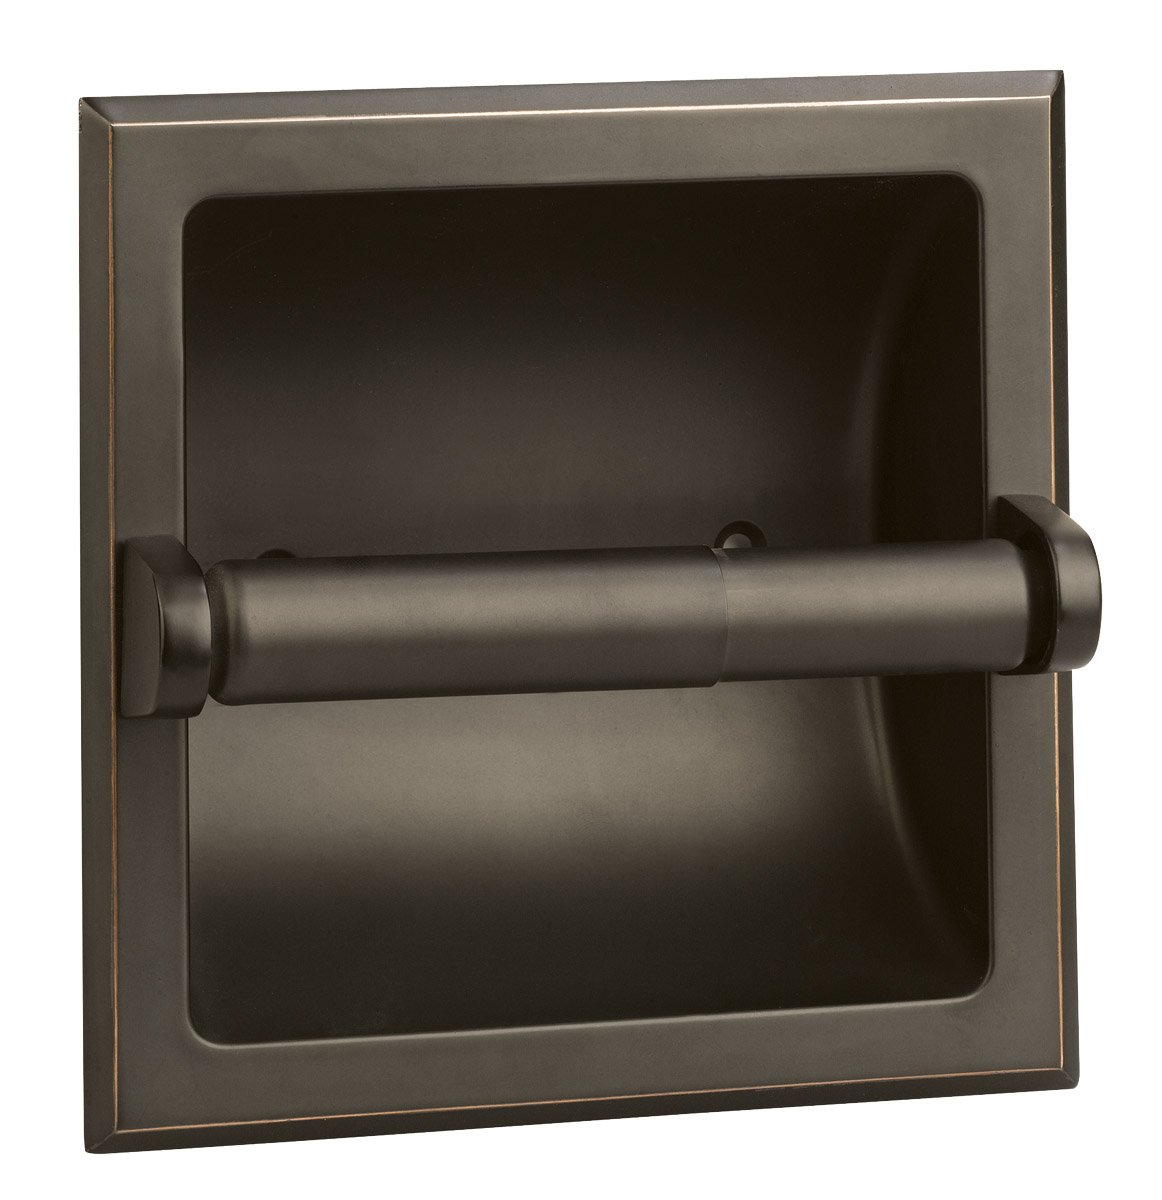 Design House 539254 Millbridge Recessed Toilet Paper Holder, Oil Rubbed Bronze